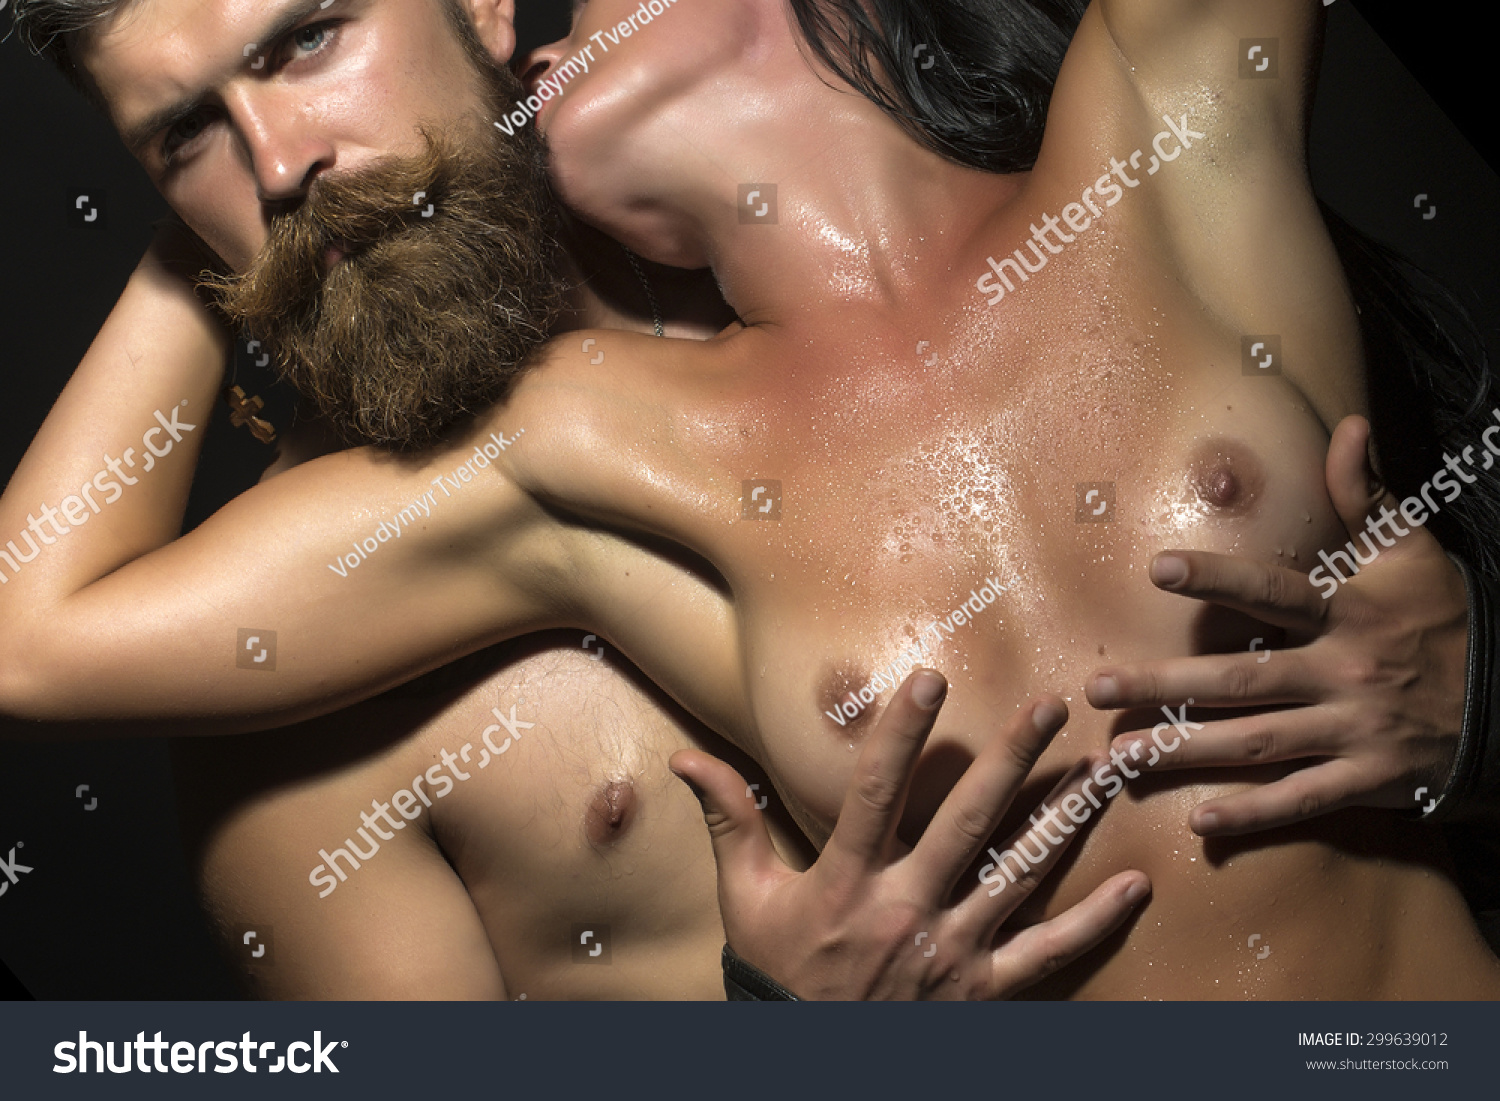 Something is. nude men touching nude men